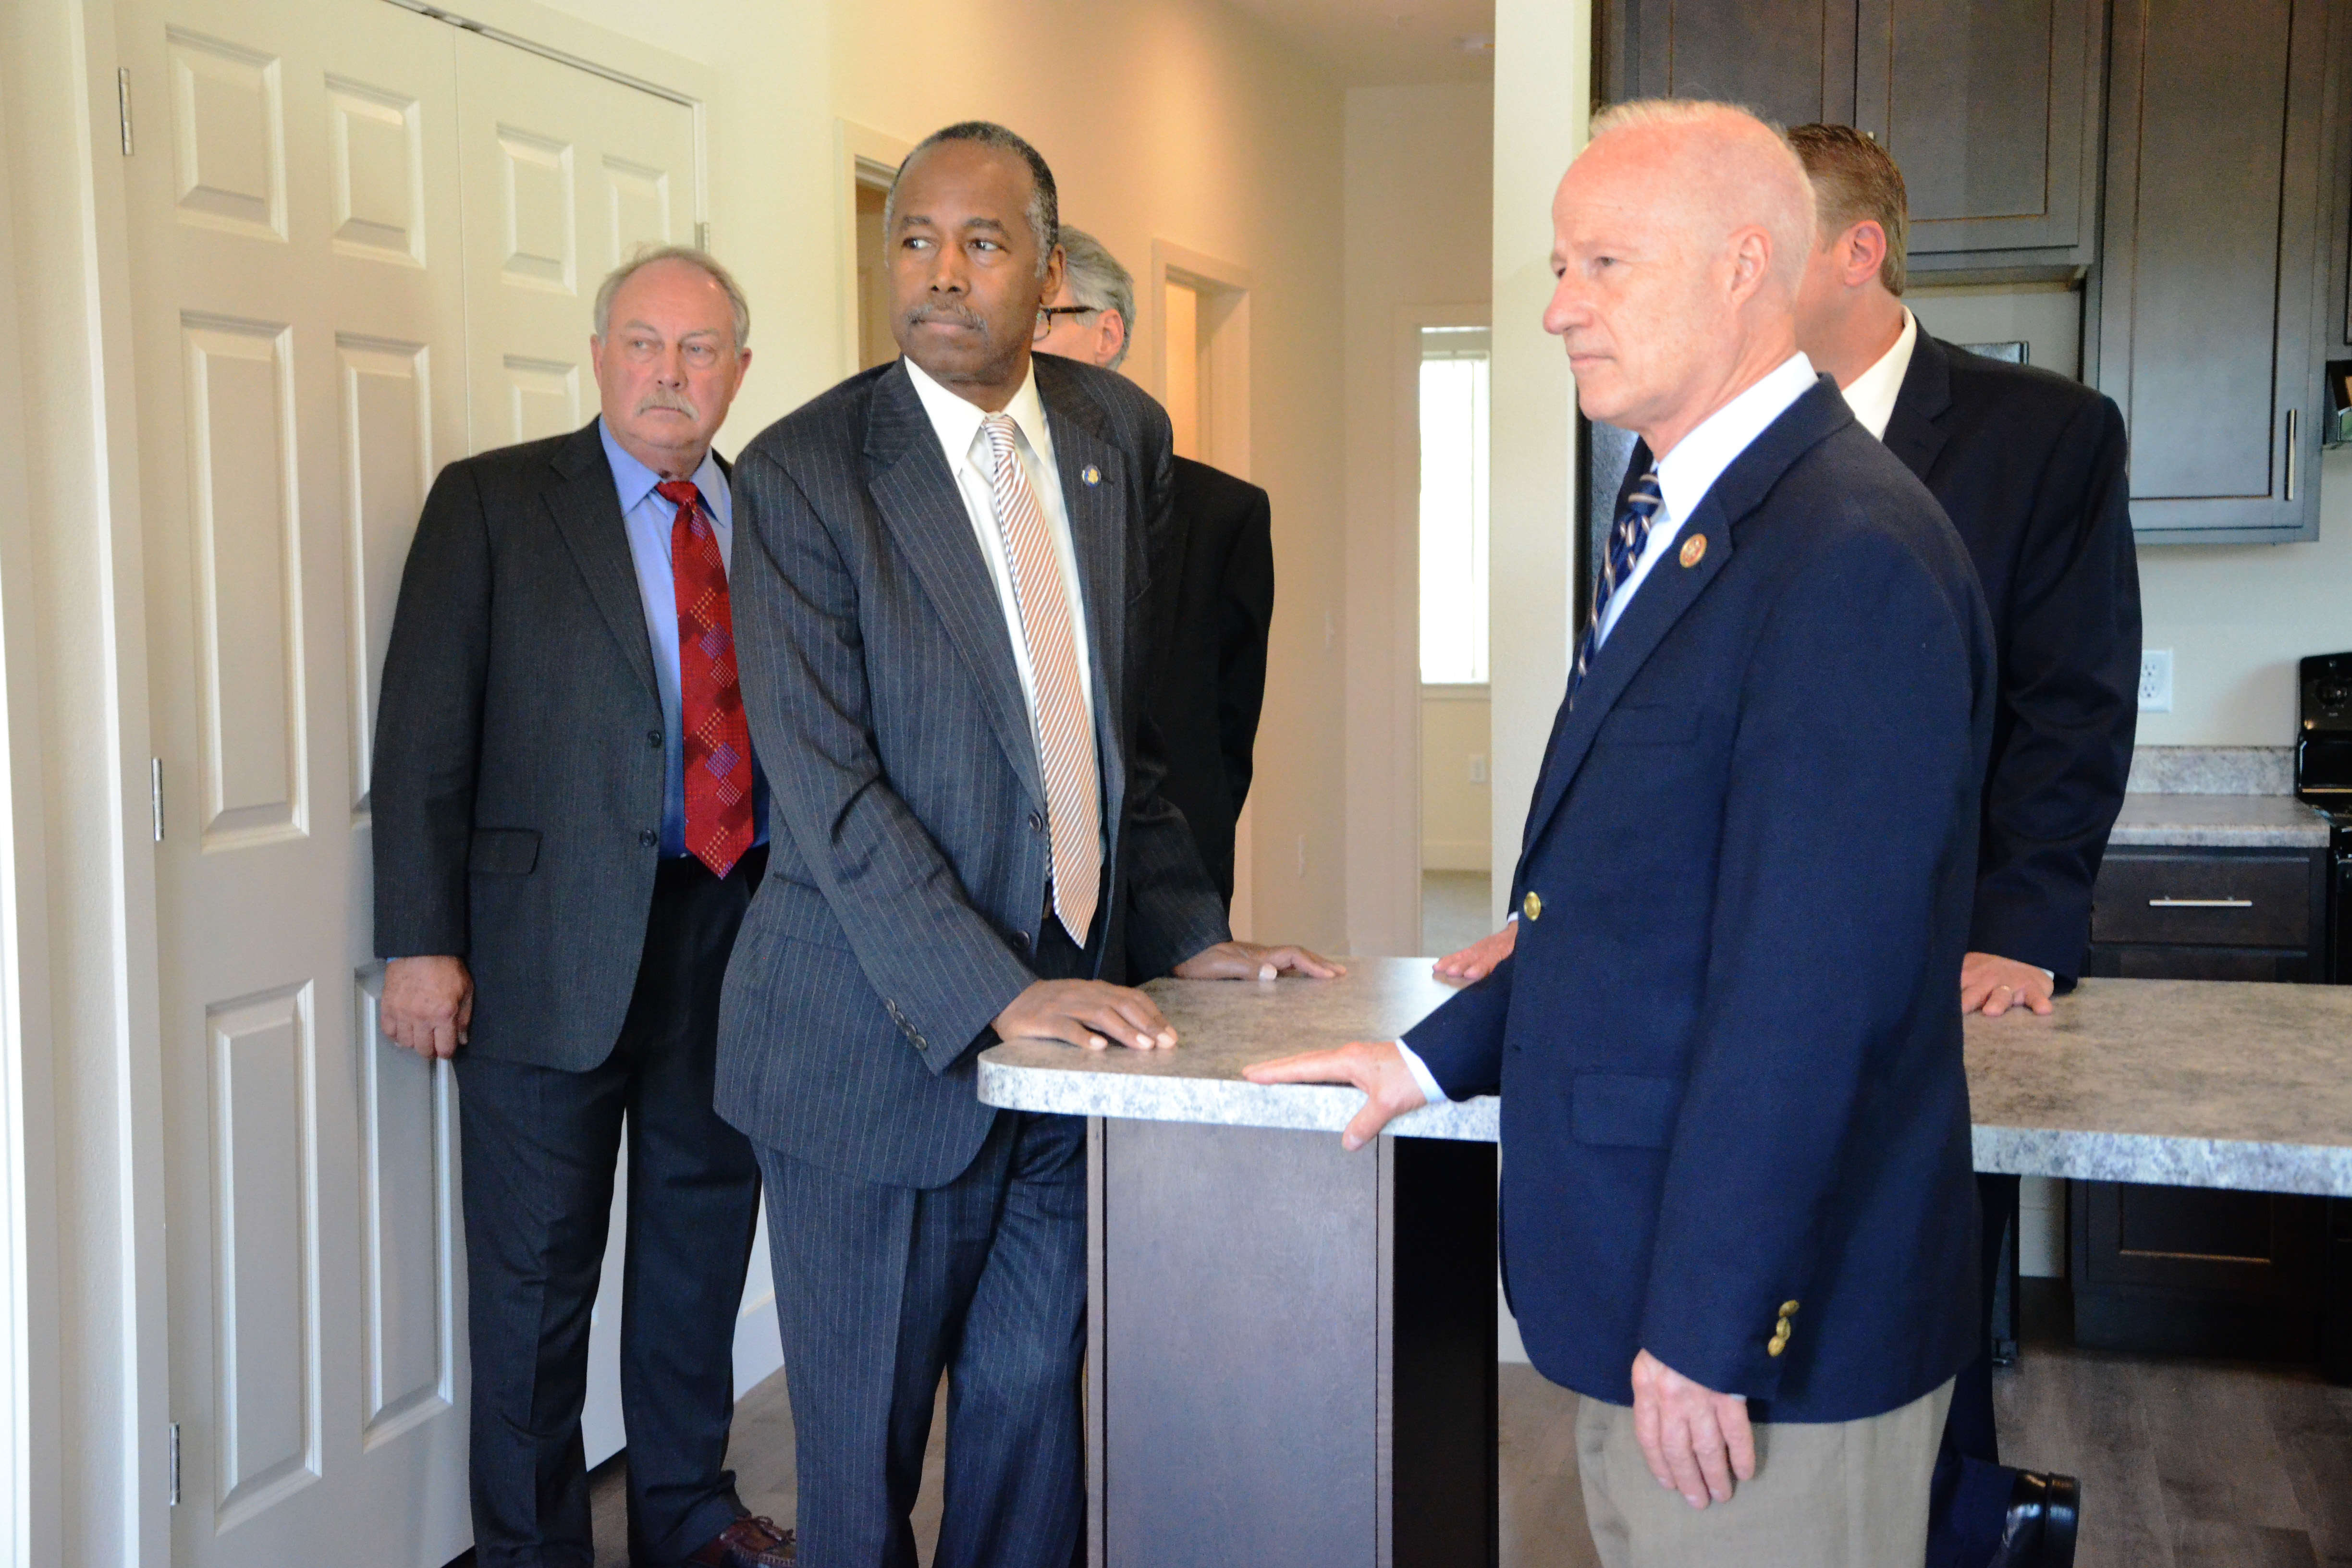 <p>U.S. Housing and Urban Development Secretary Ben Carson toured an affordable housing site in Aurora on Monday afternoon alongside U.S. Rep. Mike Coffman and Aurora Mayor Bob LeGare.</p>